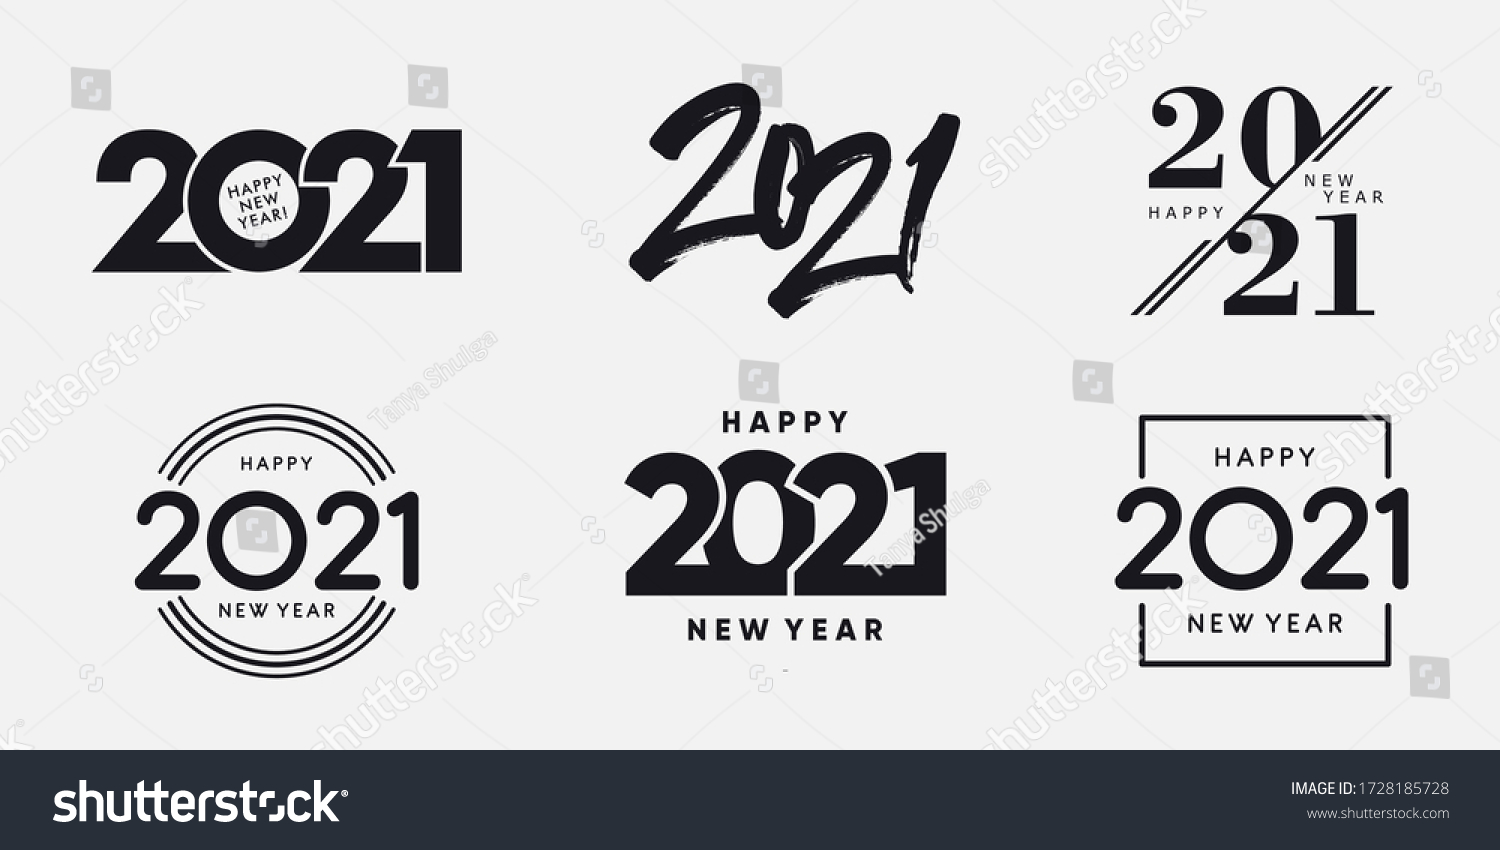 Big Set of 2021 Happy New Year logo text design. 2021 number design template. Collection of 2021 happy new year symbols. Vector illustration with black labels isolated on white background.  #1728185728